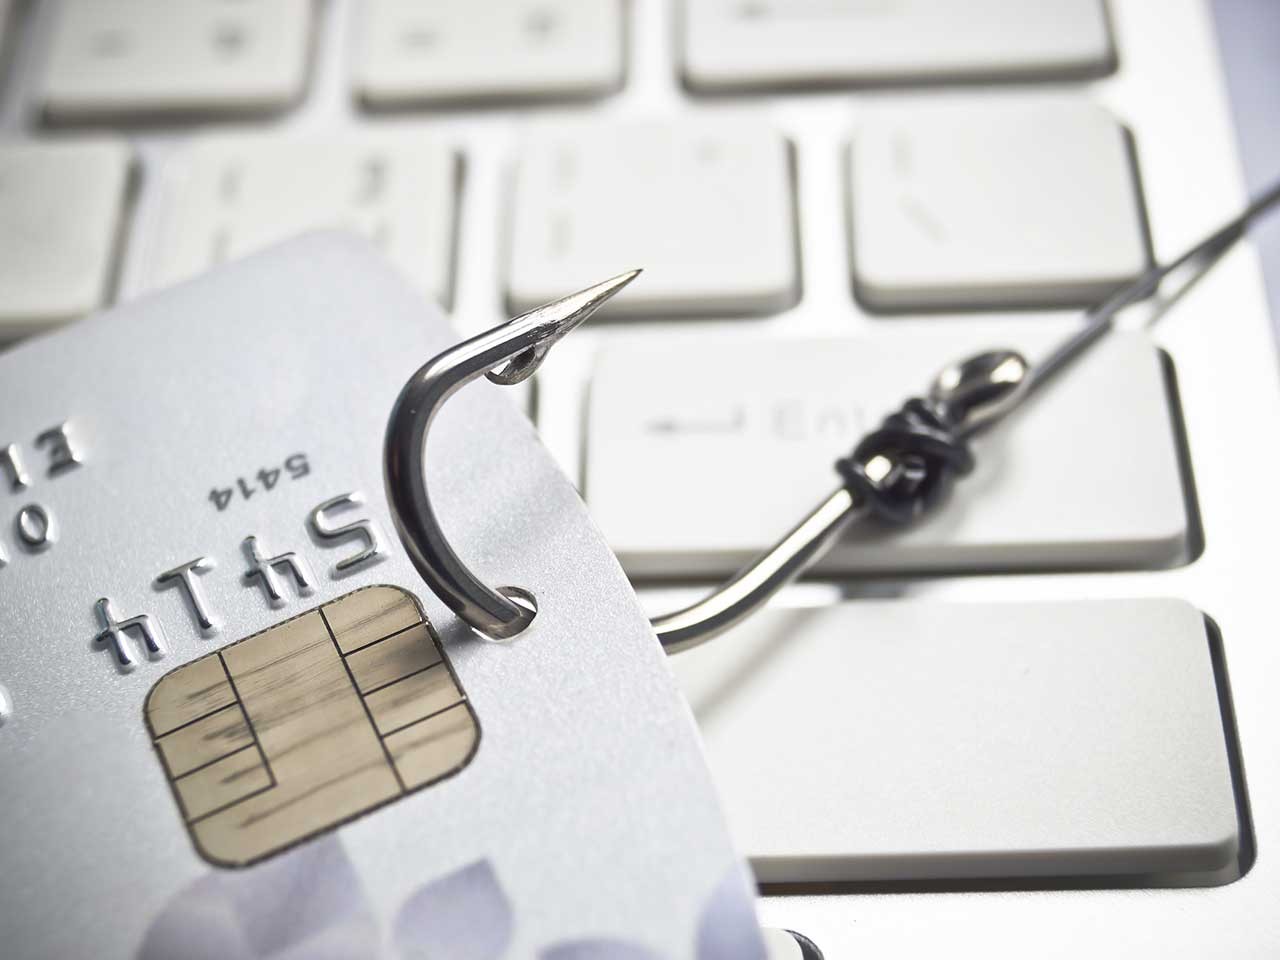 Fishing hook dragging a credit card across a computer keyboard to represent cyber crime